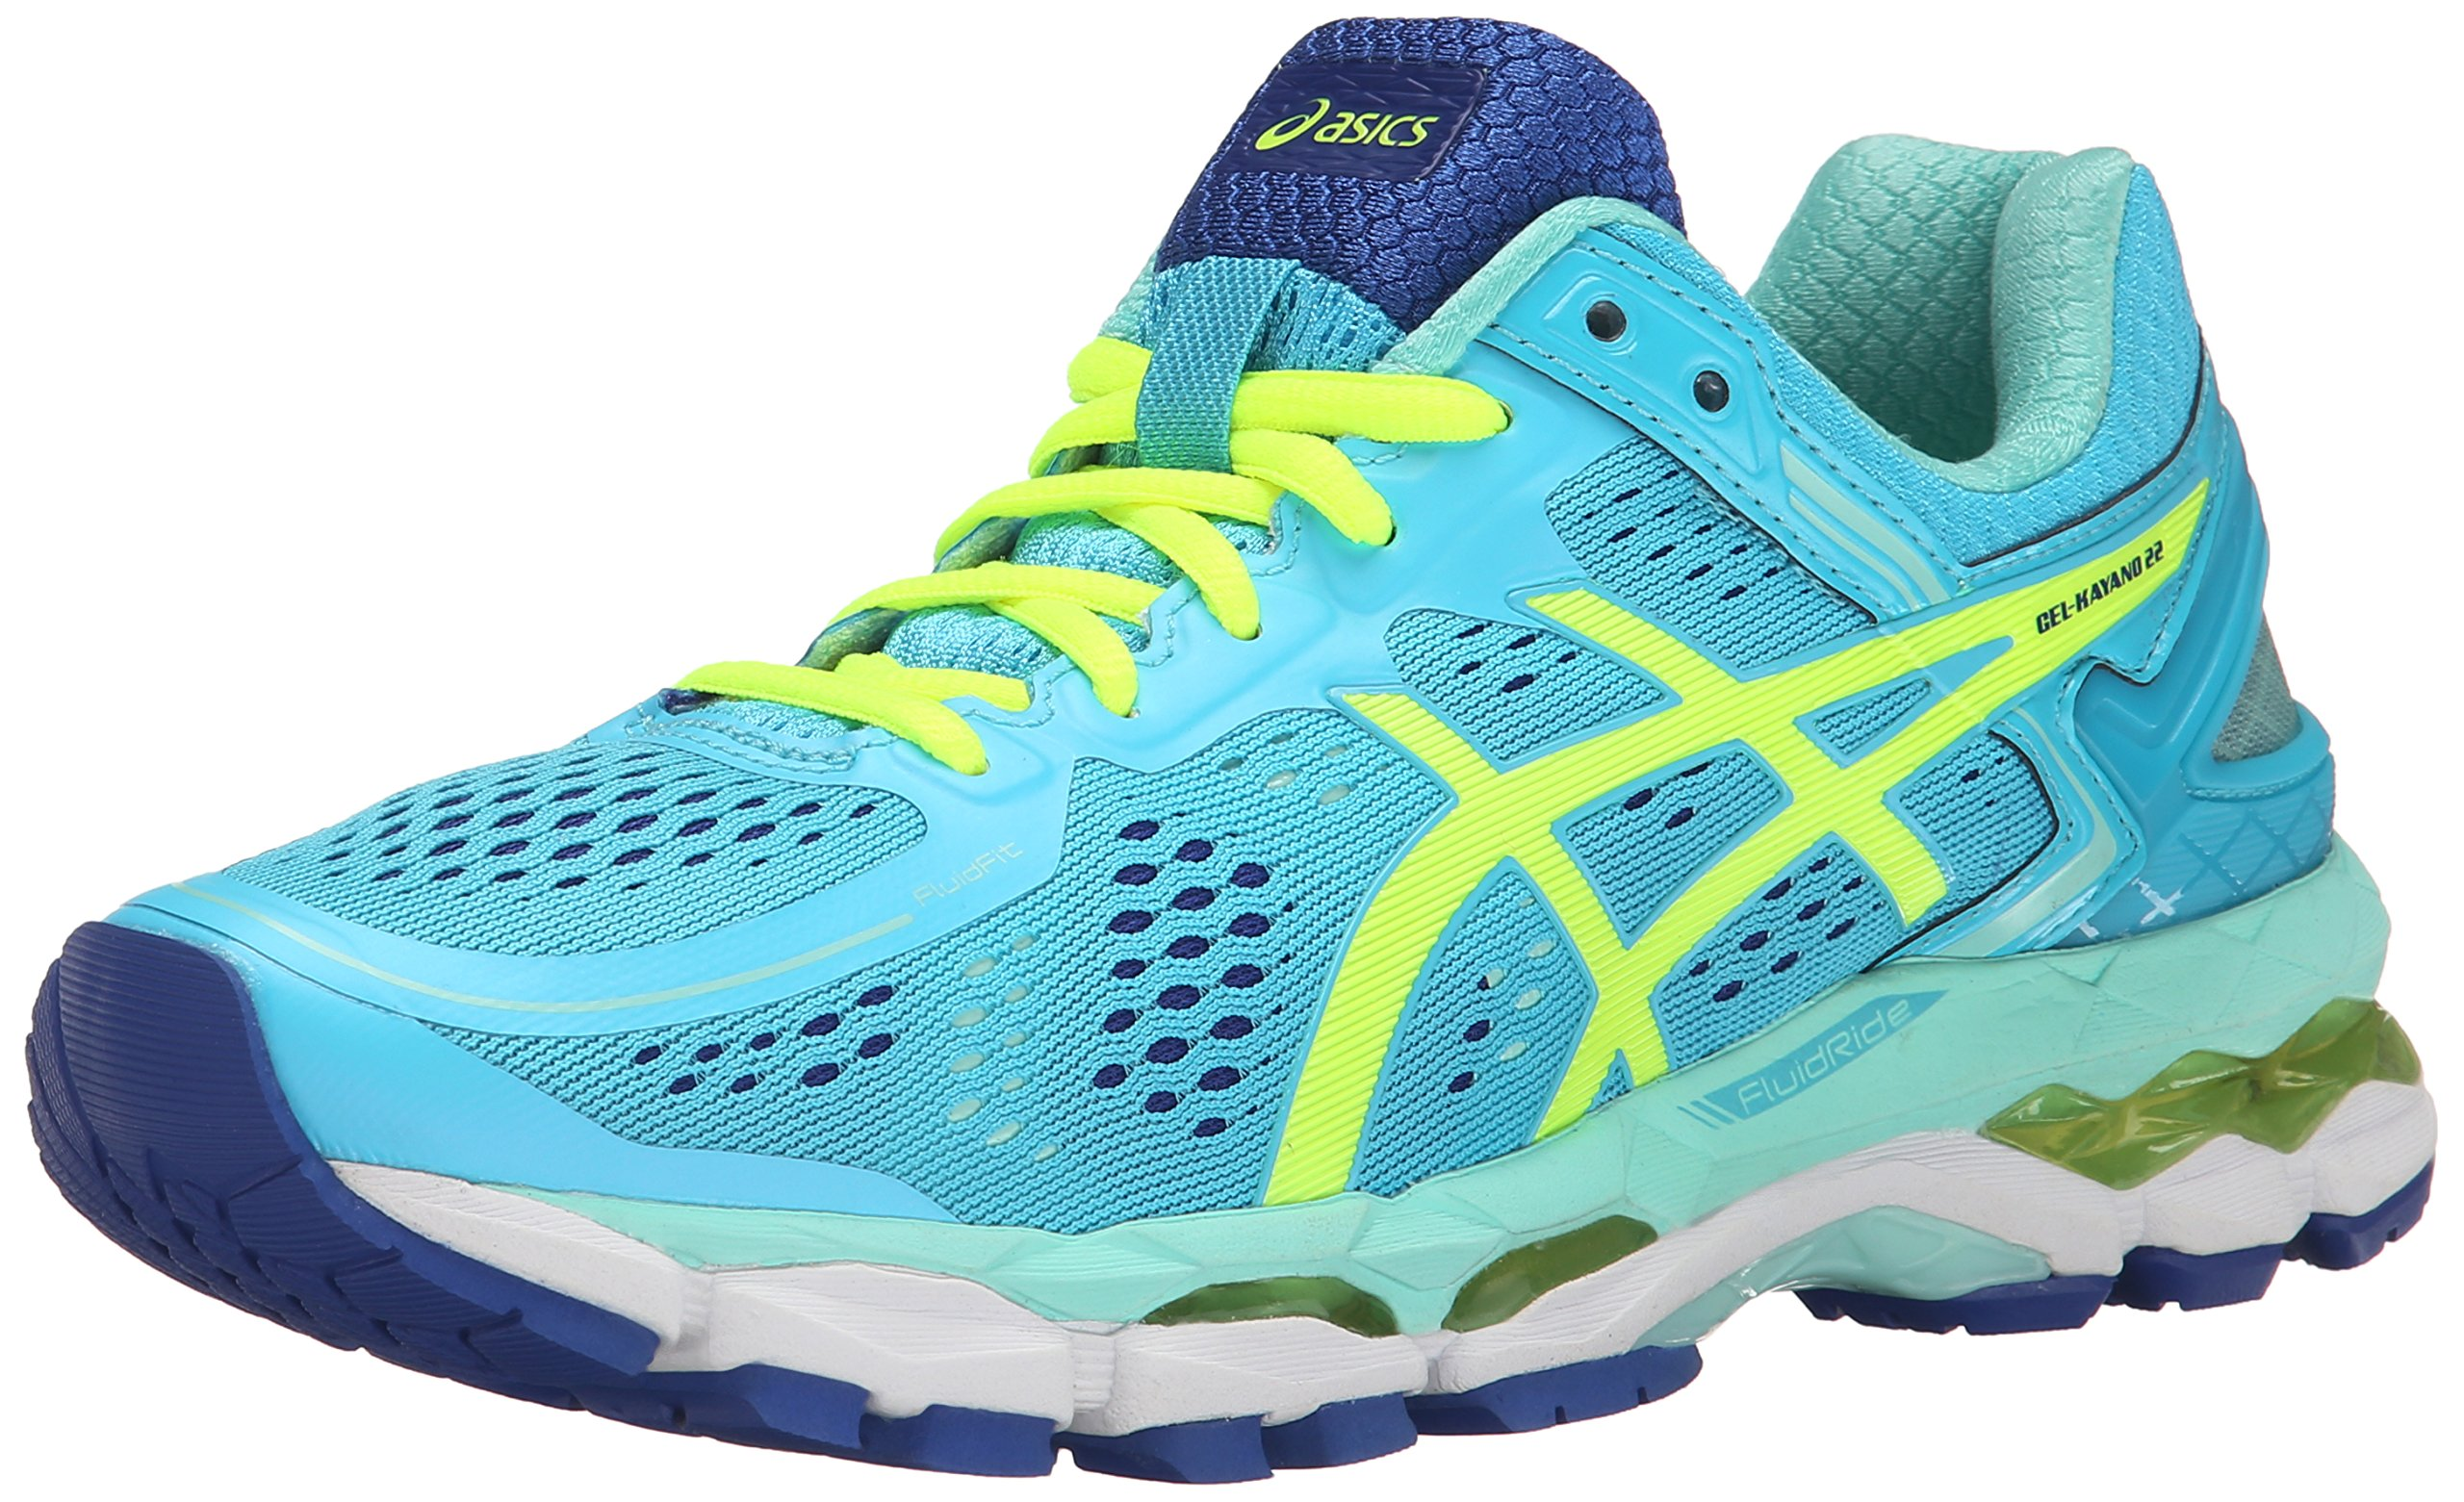 ASICS Women's Gel Kayano 22 Running Shoe, Ice Blue/Flash Yellow/Blue, 7.5 M US